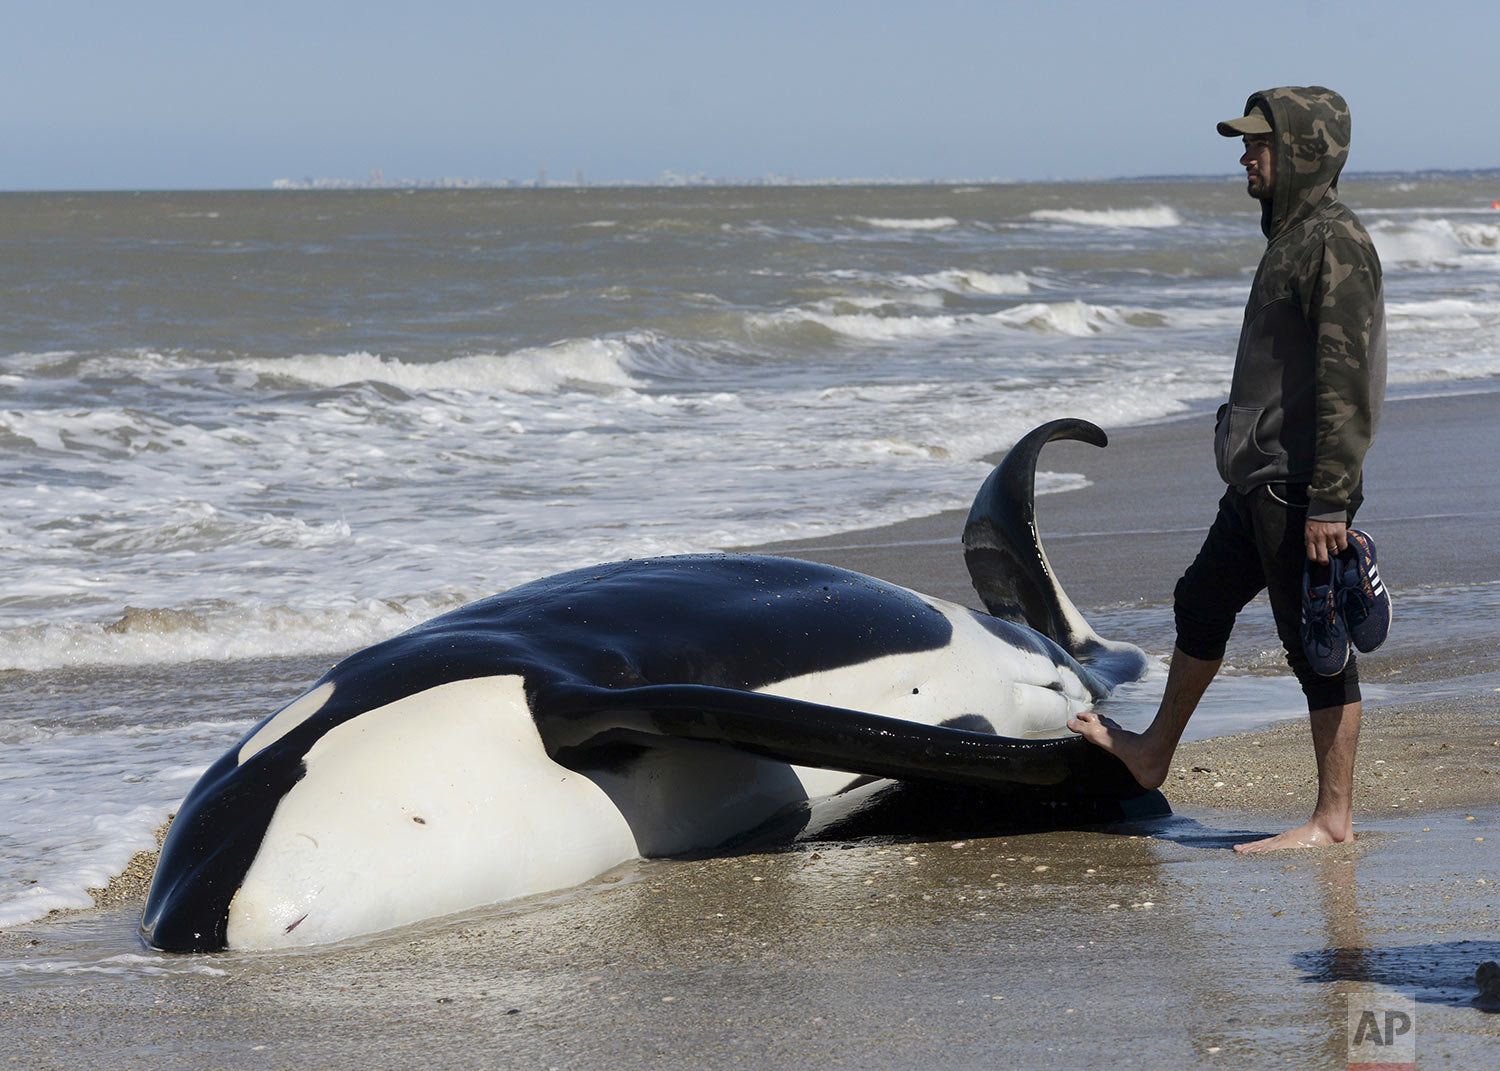 A man stands next to a dead killer whale near Mar Chiquita, Argentina, Monday, Sept. 16, 2019. Seven killer whales were stranded on the coast before rescuers and volunteers returned six of them to sea, but one died in the process. (AP Photo/Marina Devo)